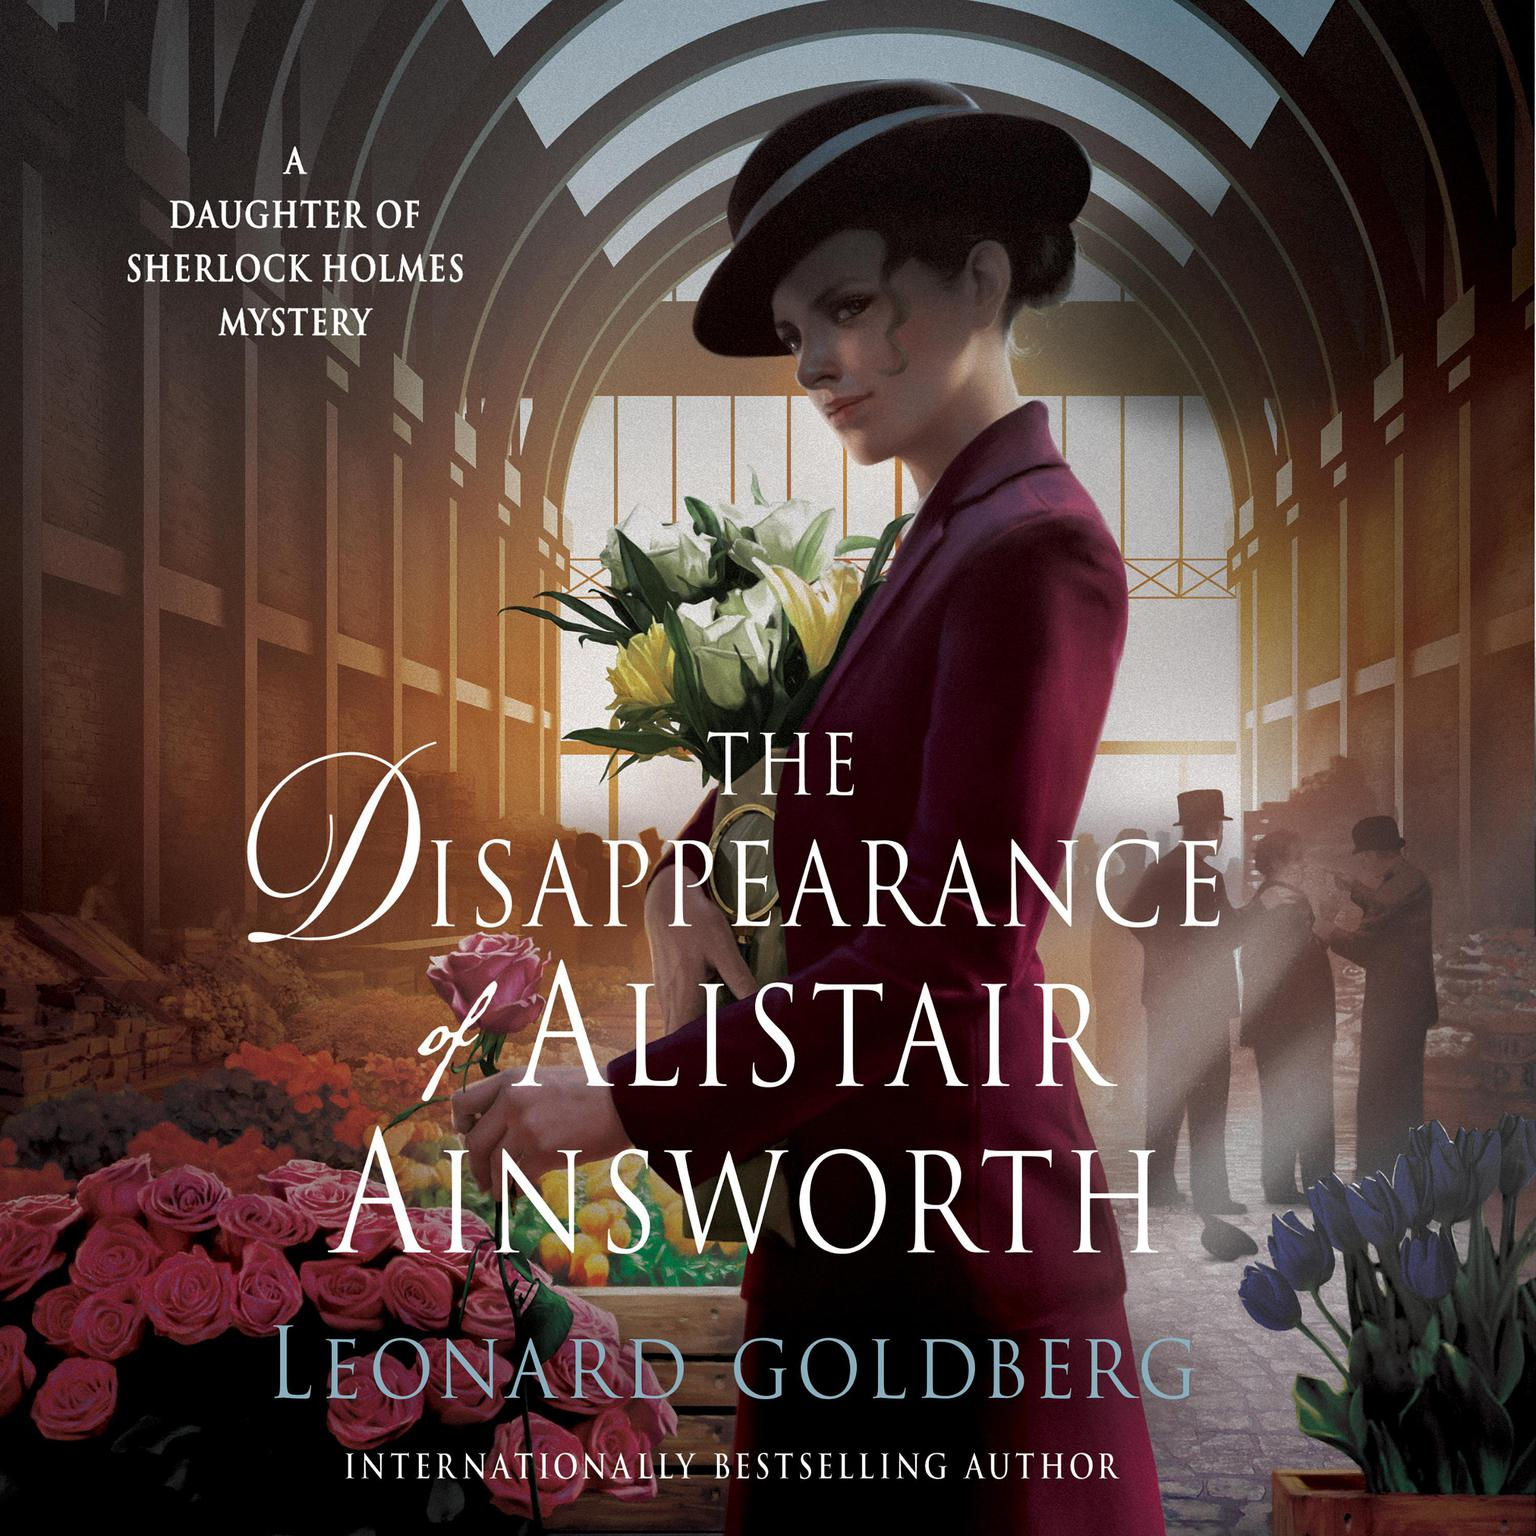 Printable The Disappearance of Alistair Ainsworth: A Daughter of Sherlock Holmes Mystery Audiobook Cover Art